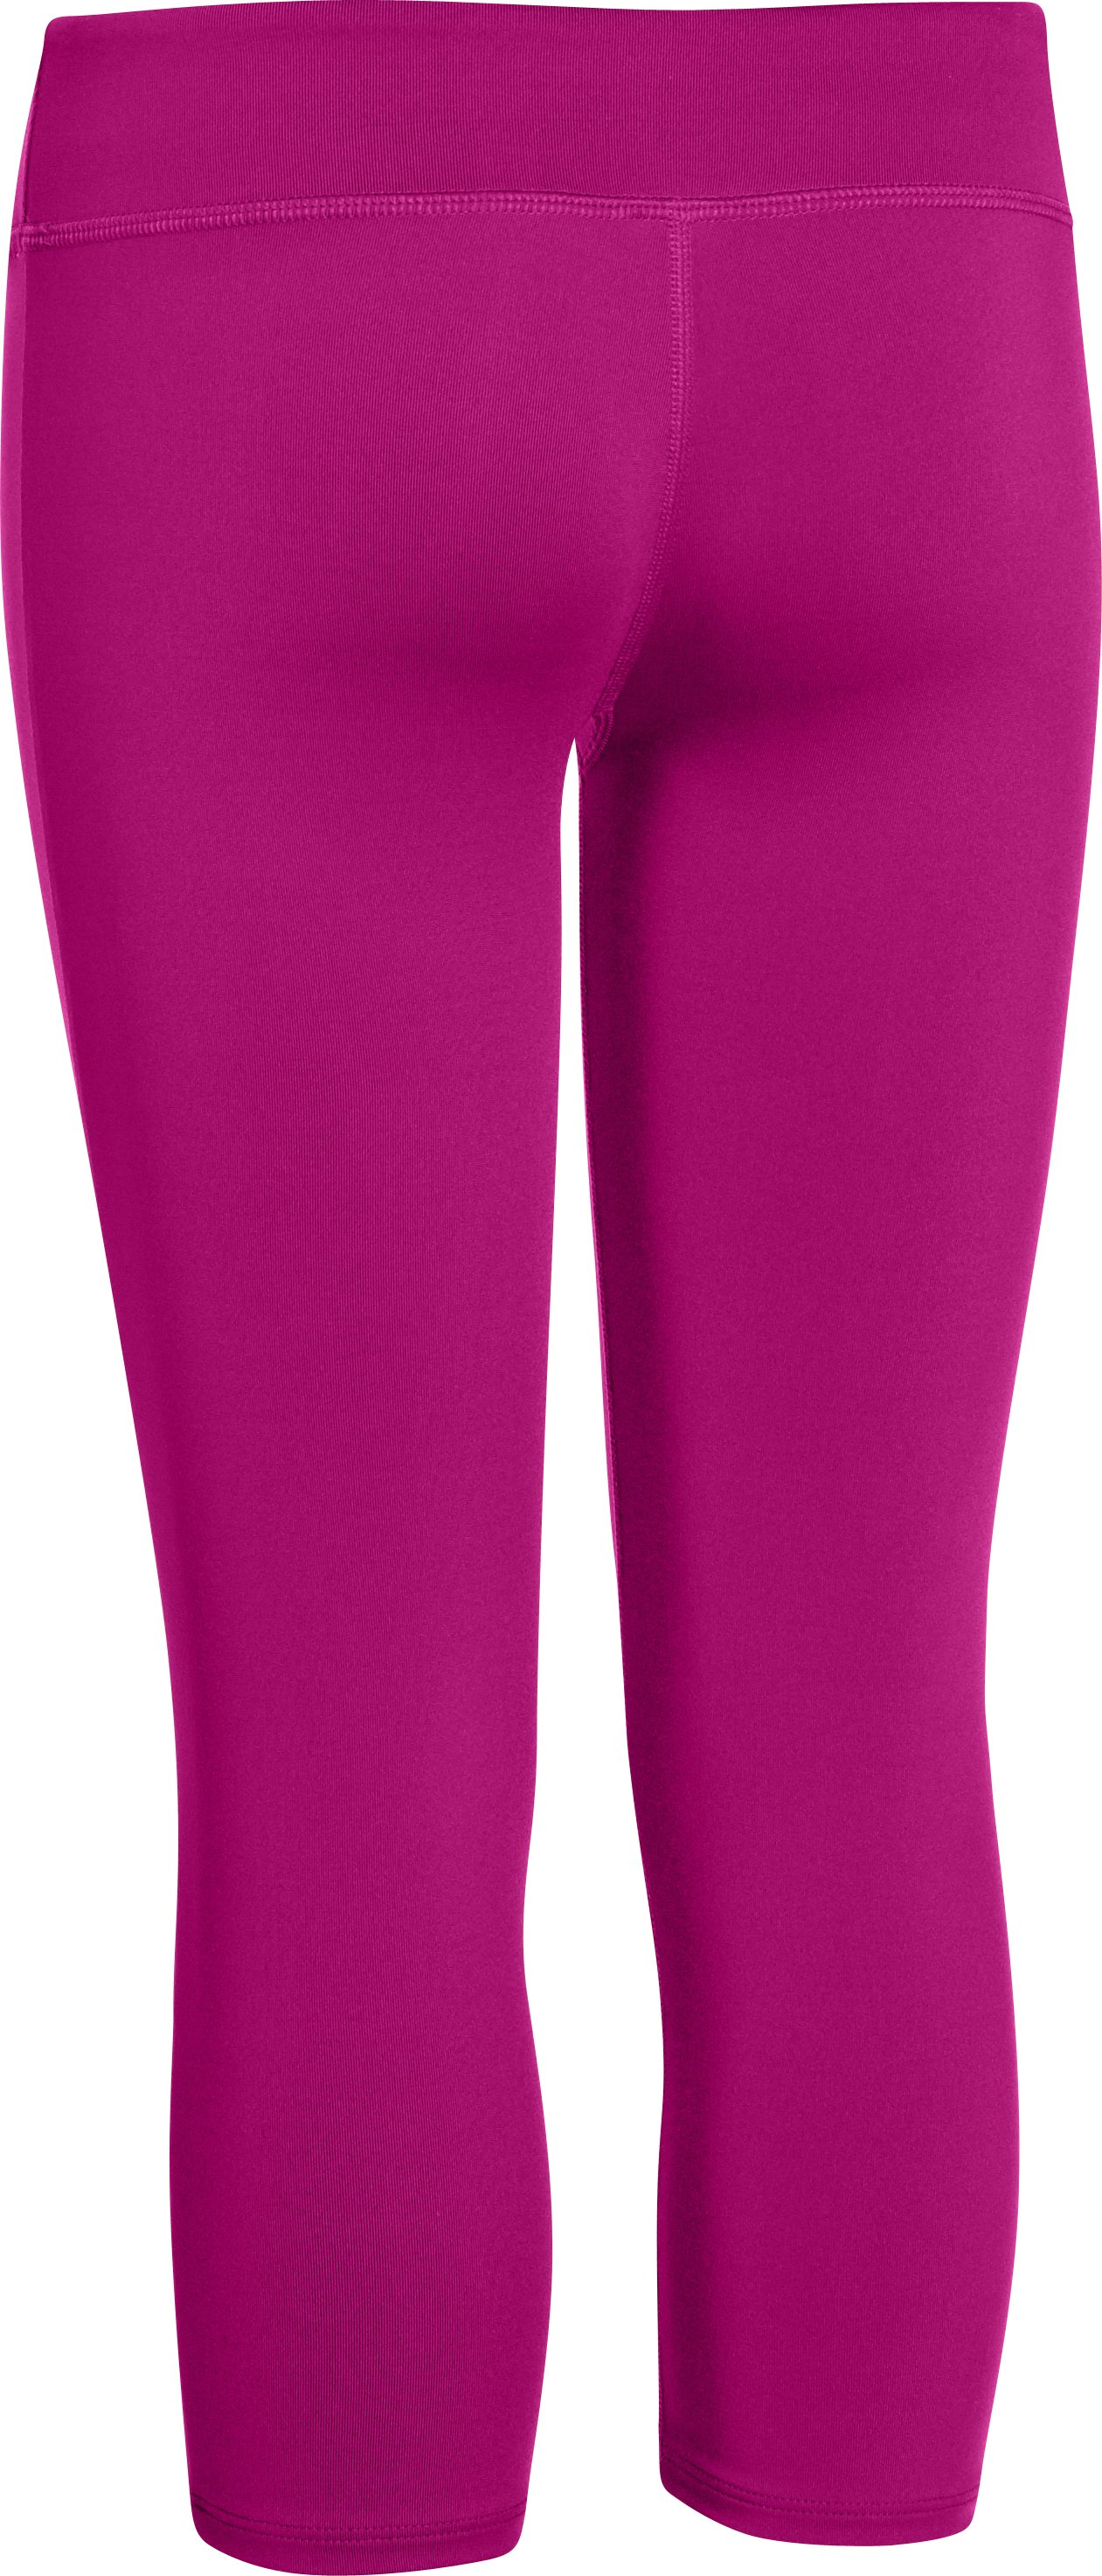 Girls' HeatGear® Armour Capri, MAGENTA SHOCK, undefined